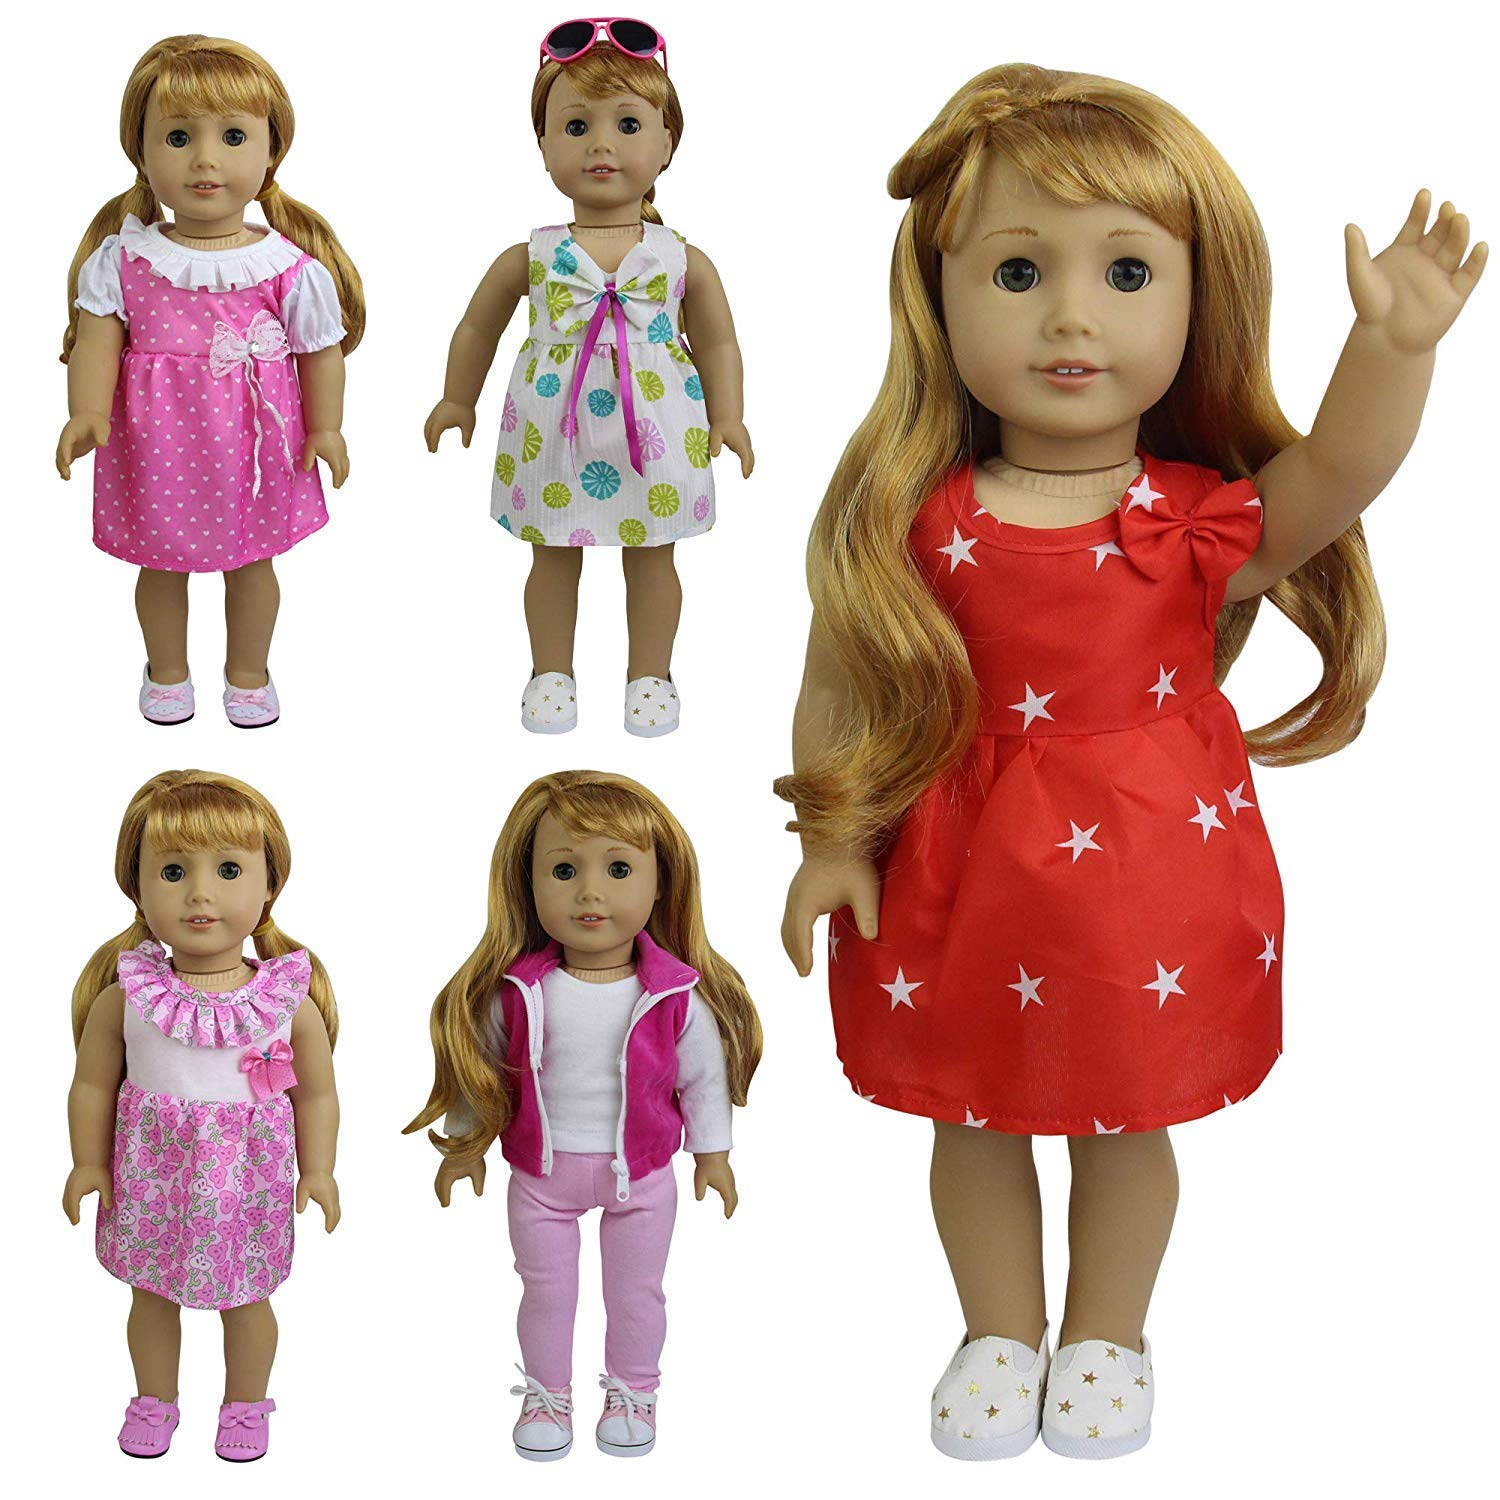 ZITA ELEMENT 5 Sets Fashion Handmade Clothes Dress for American 18 inch Girl Doll Outfits and Other 18 Inch Dolls Accessories